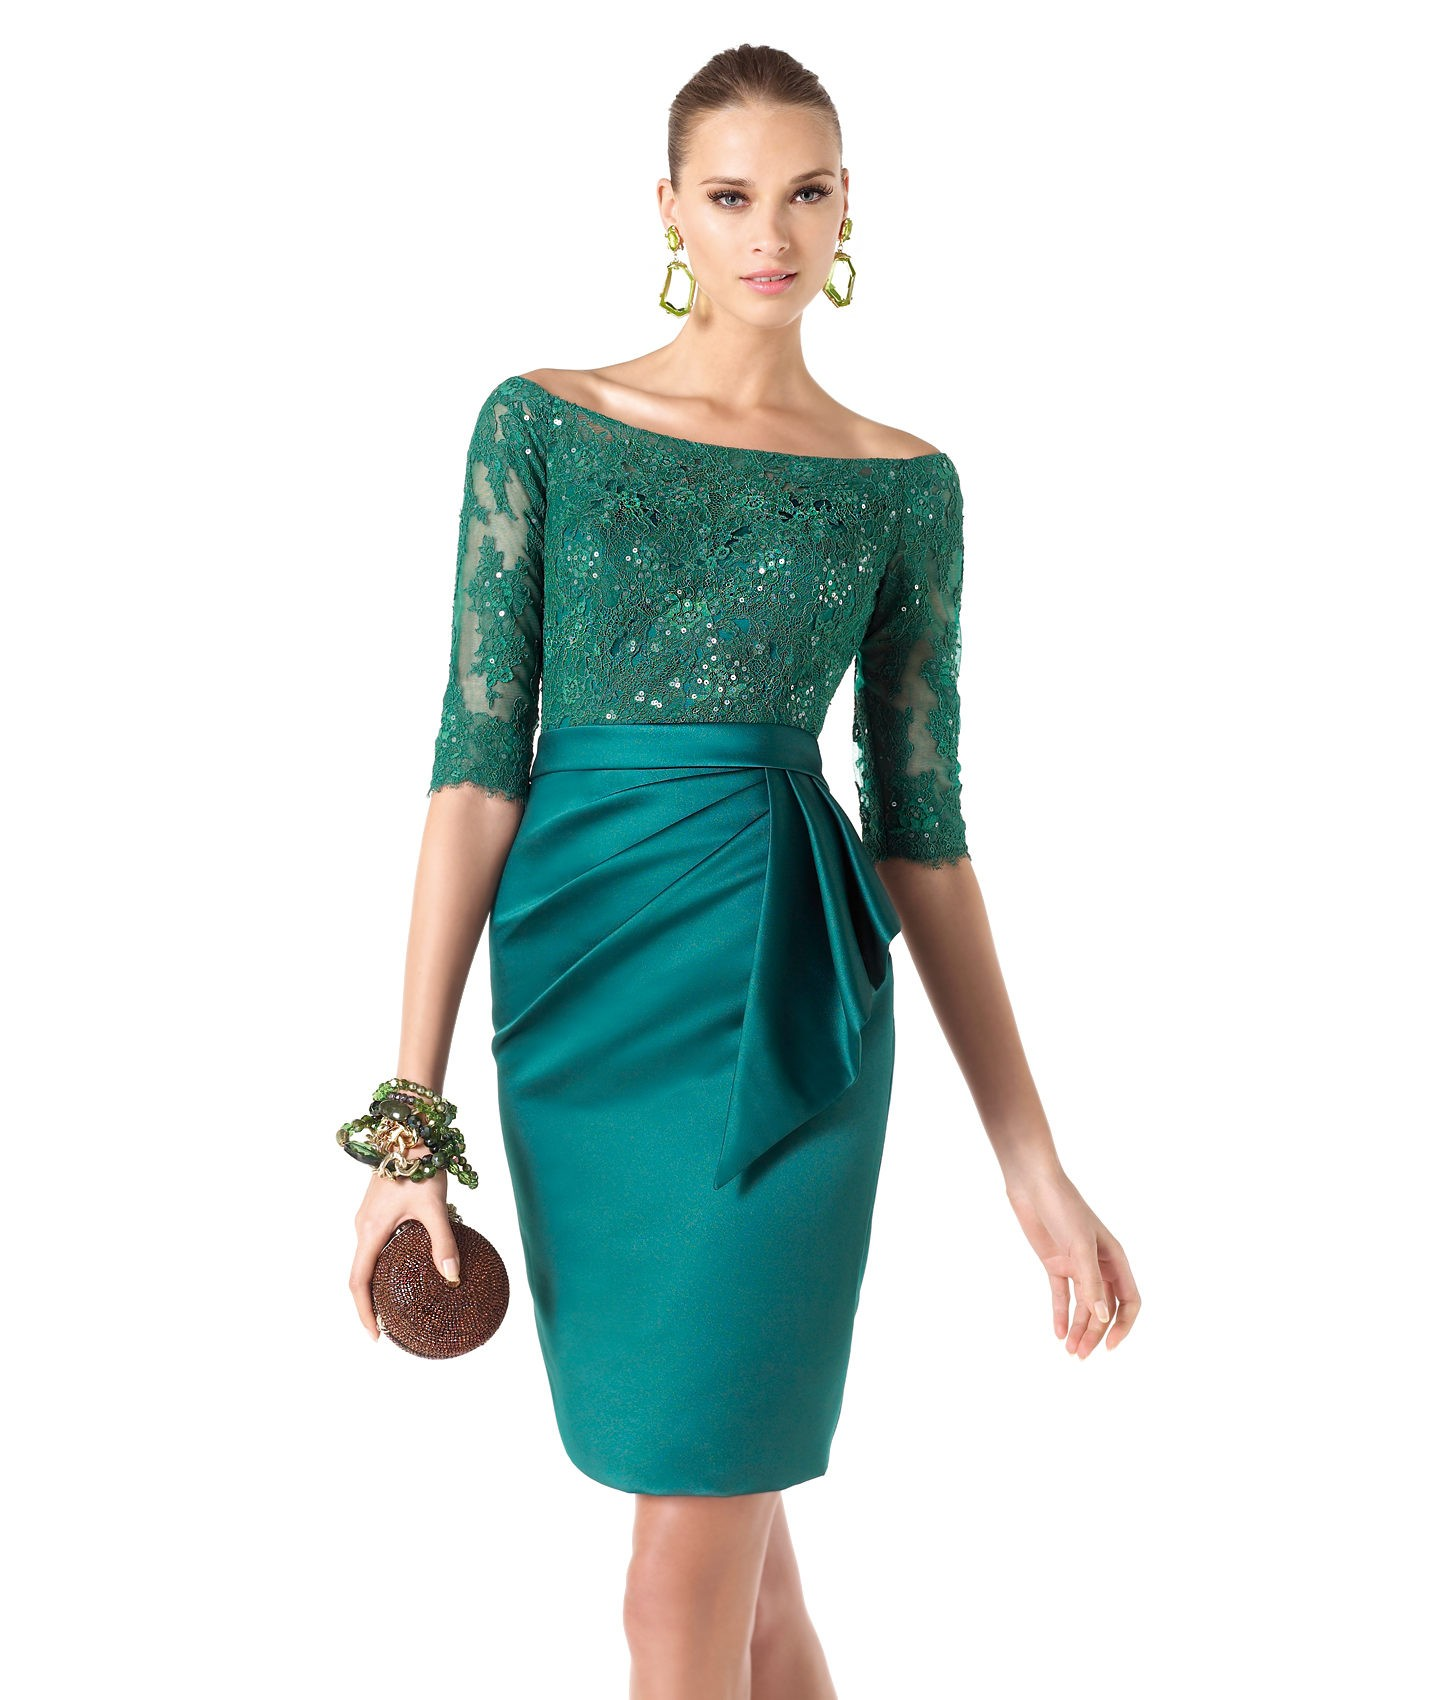 Dresses For Mature Wedding Guests. Top Maxi Dress For A Beach ...